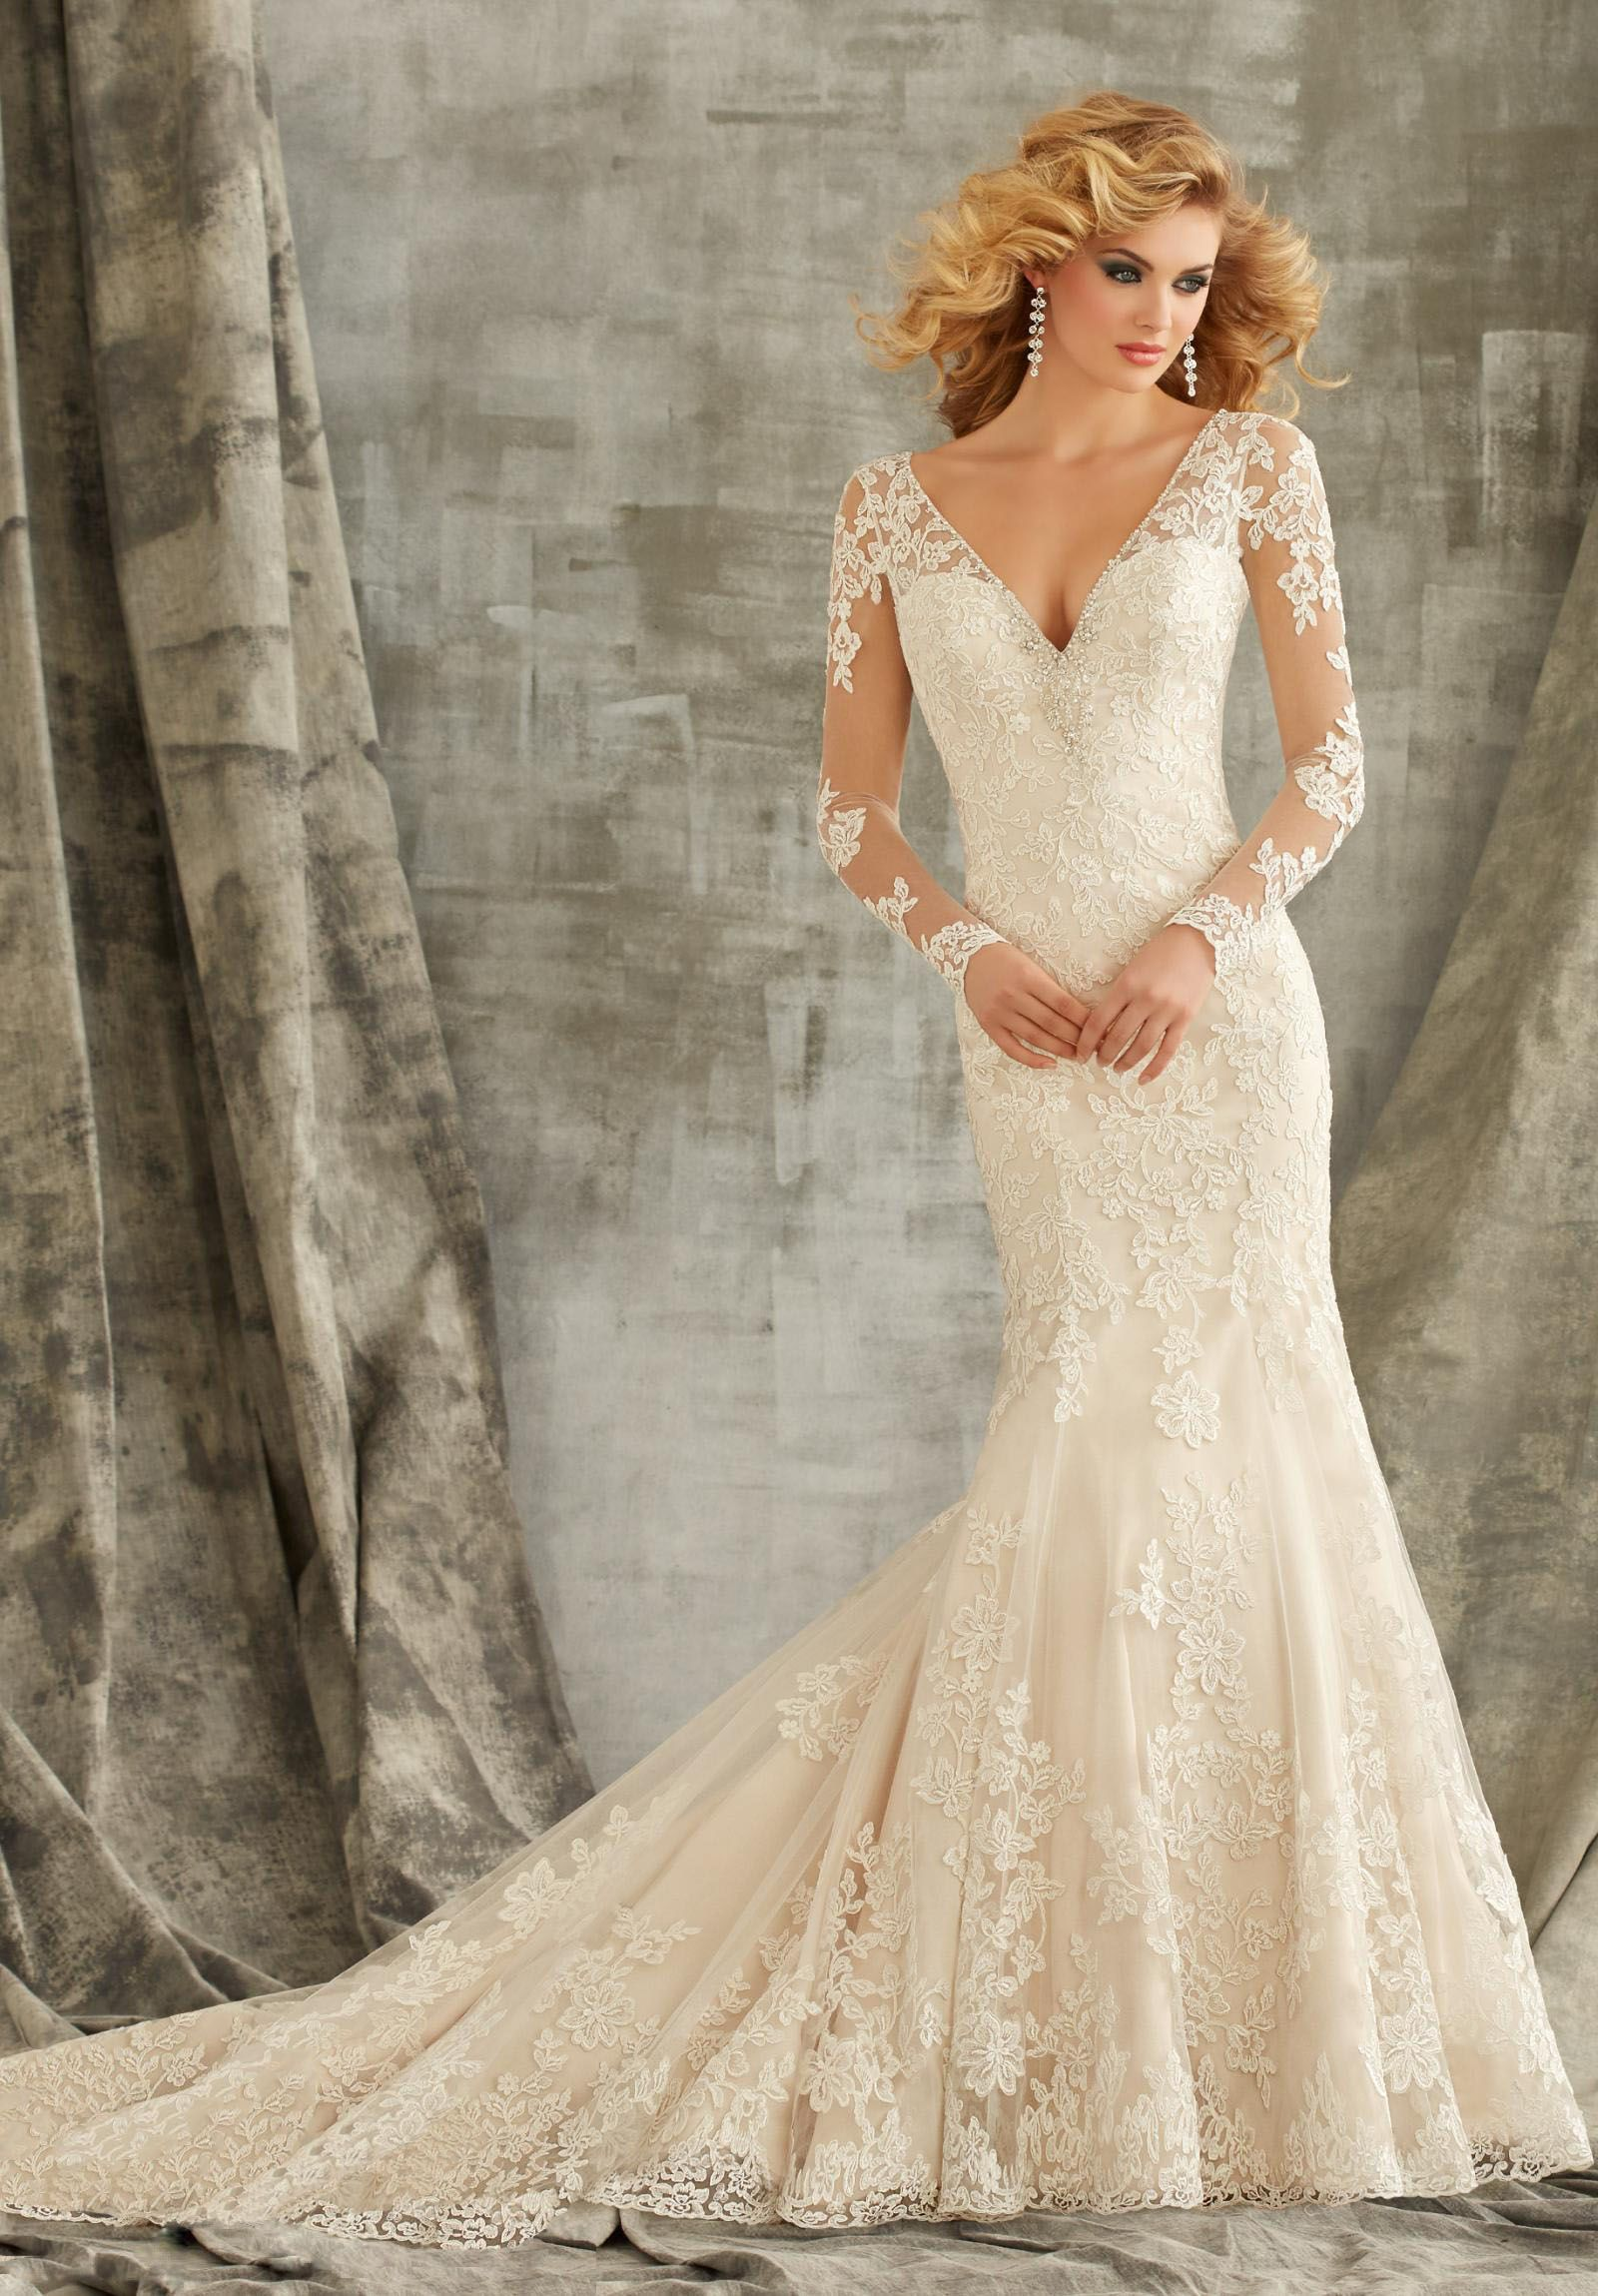 Whimsical wedding dresses for brides who are pretty petite for Petite bride wedding dress